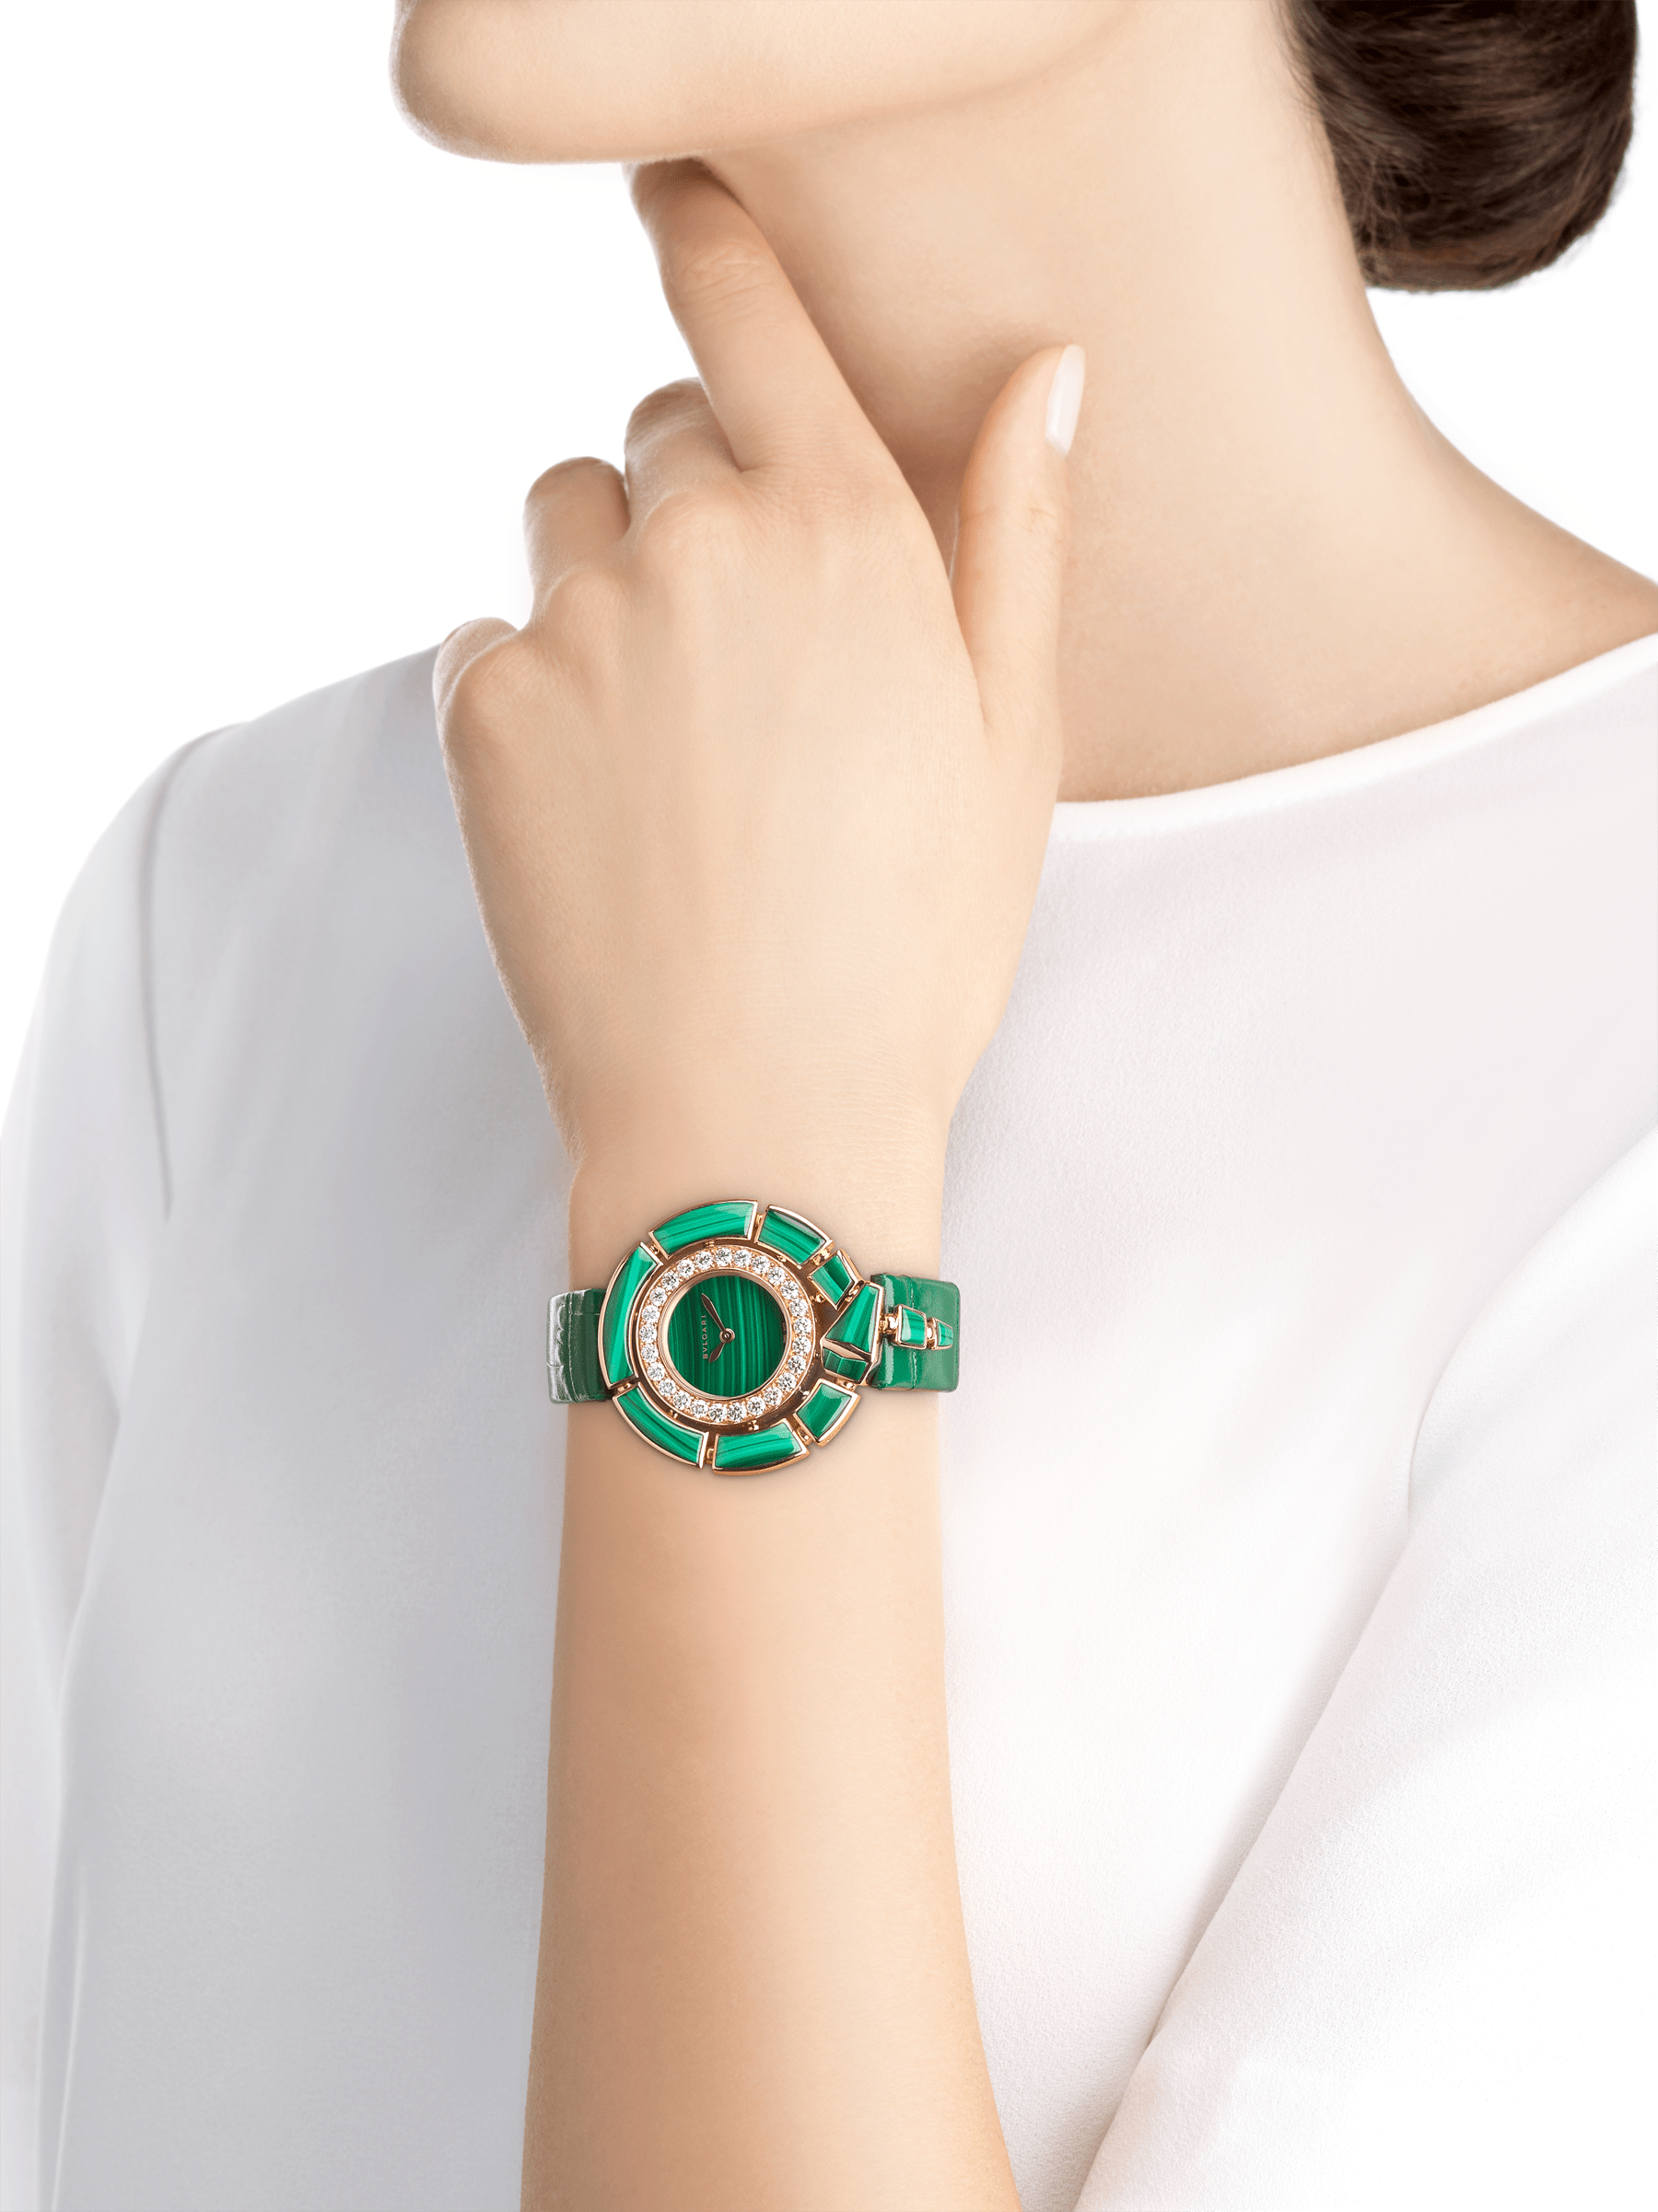 Serpenti Incantati watch with 18 kt rose gold case set with brilliant-cut diamonds and malachite elements, malachite dial and green alligator bracelet 102871 image 3